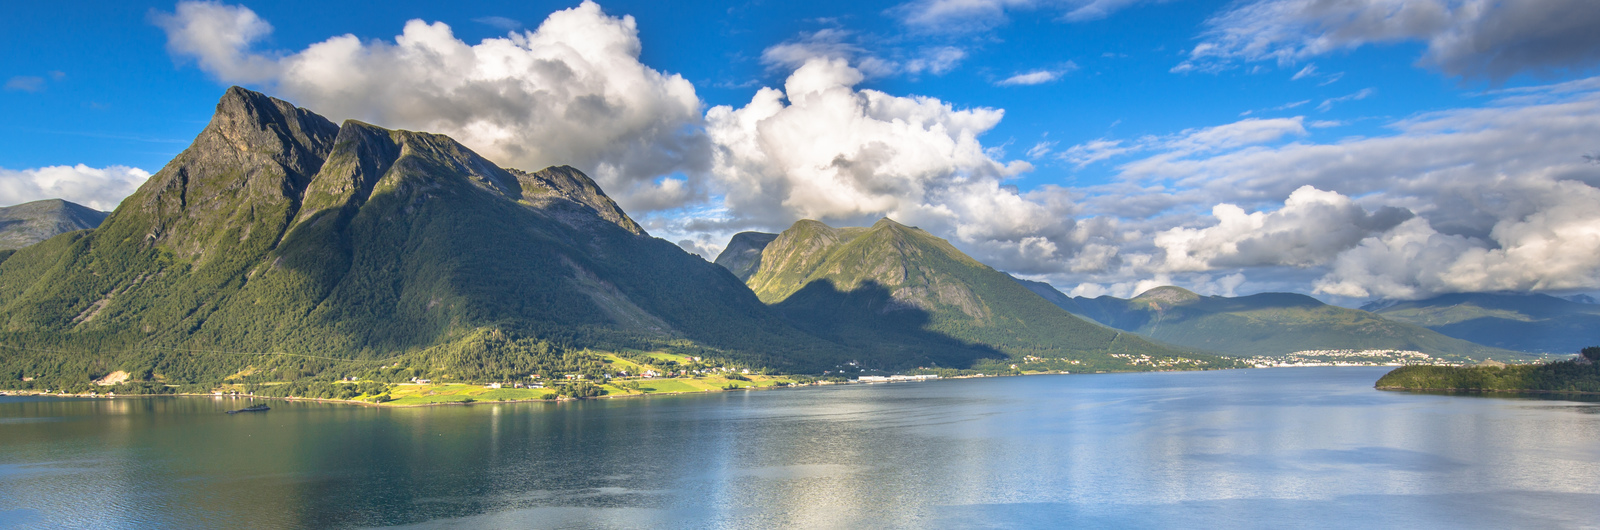 city header norway mountains